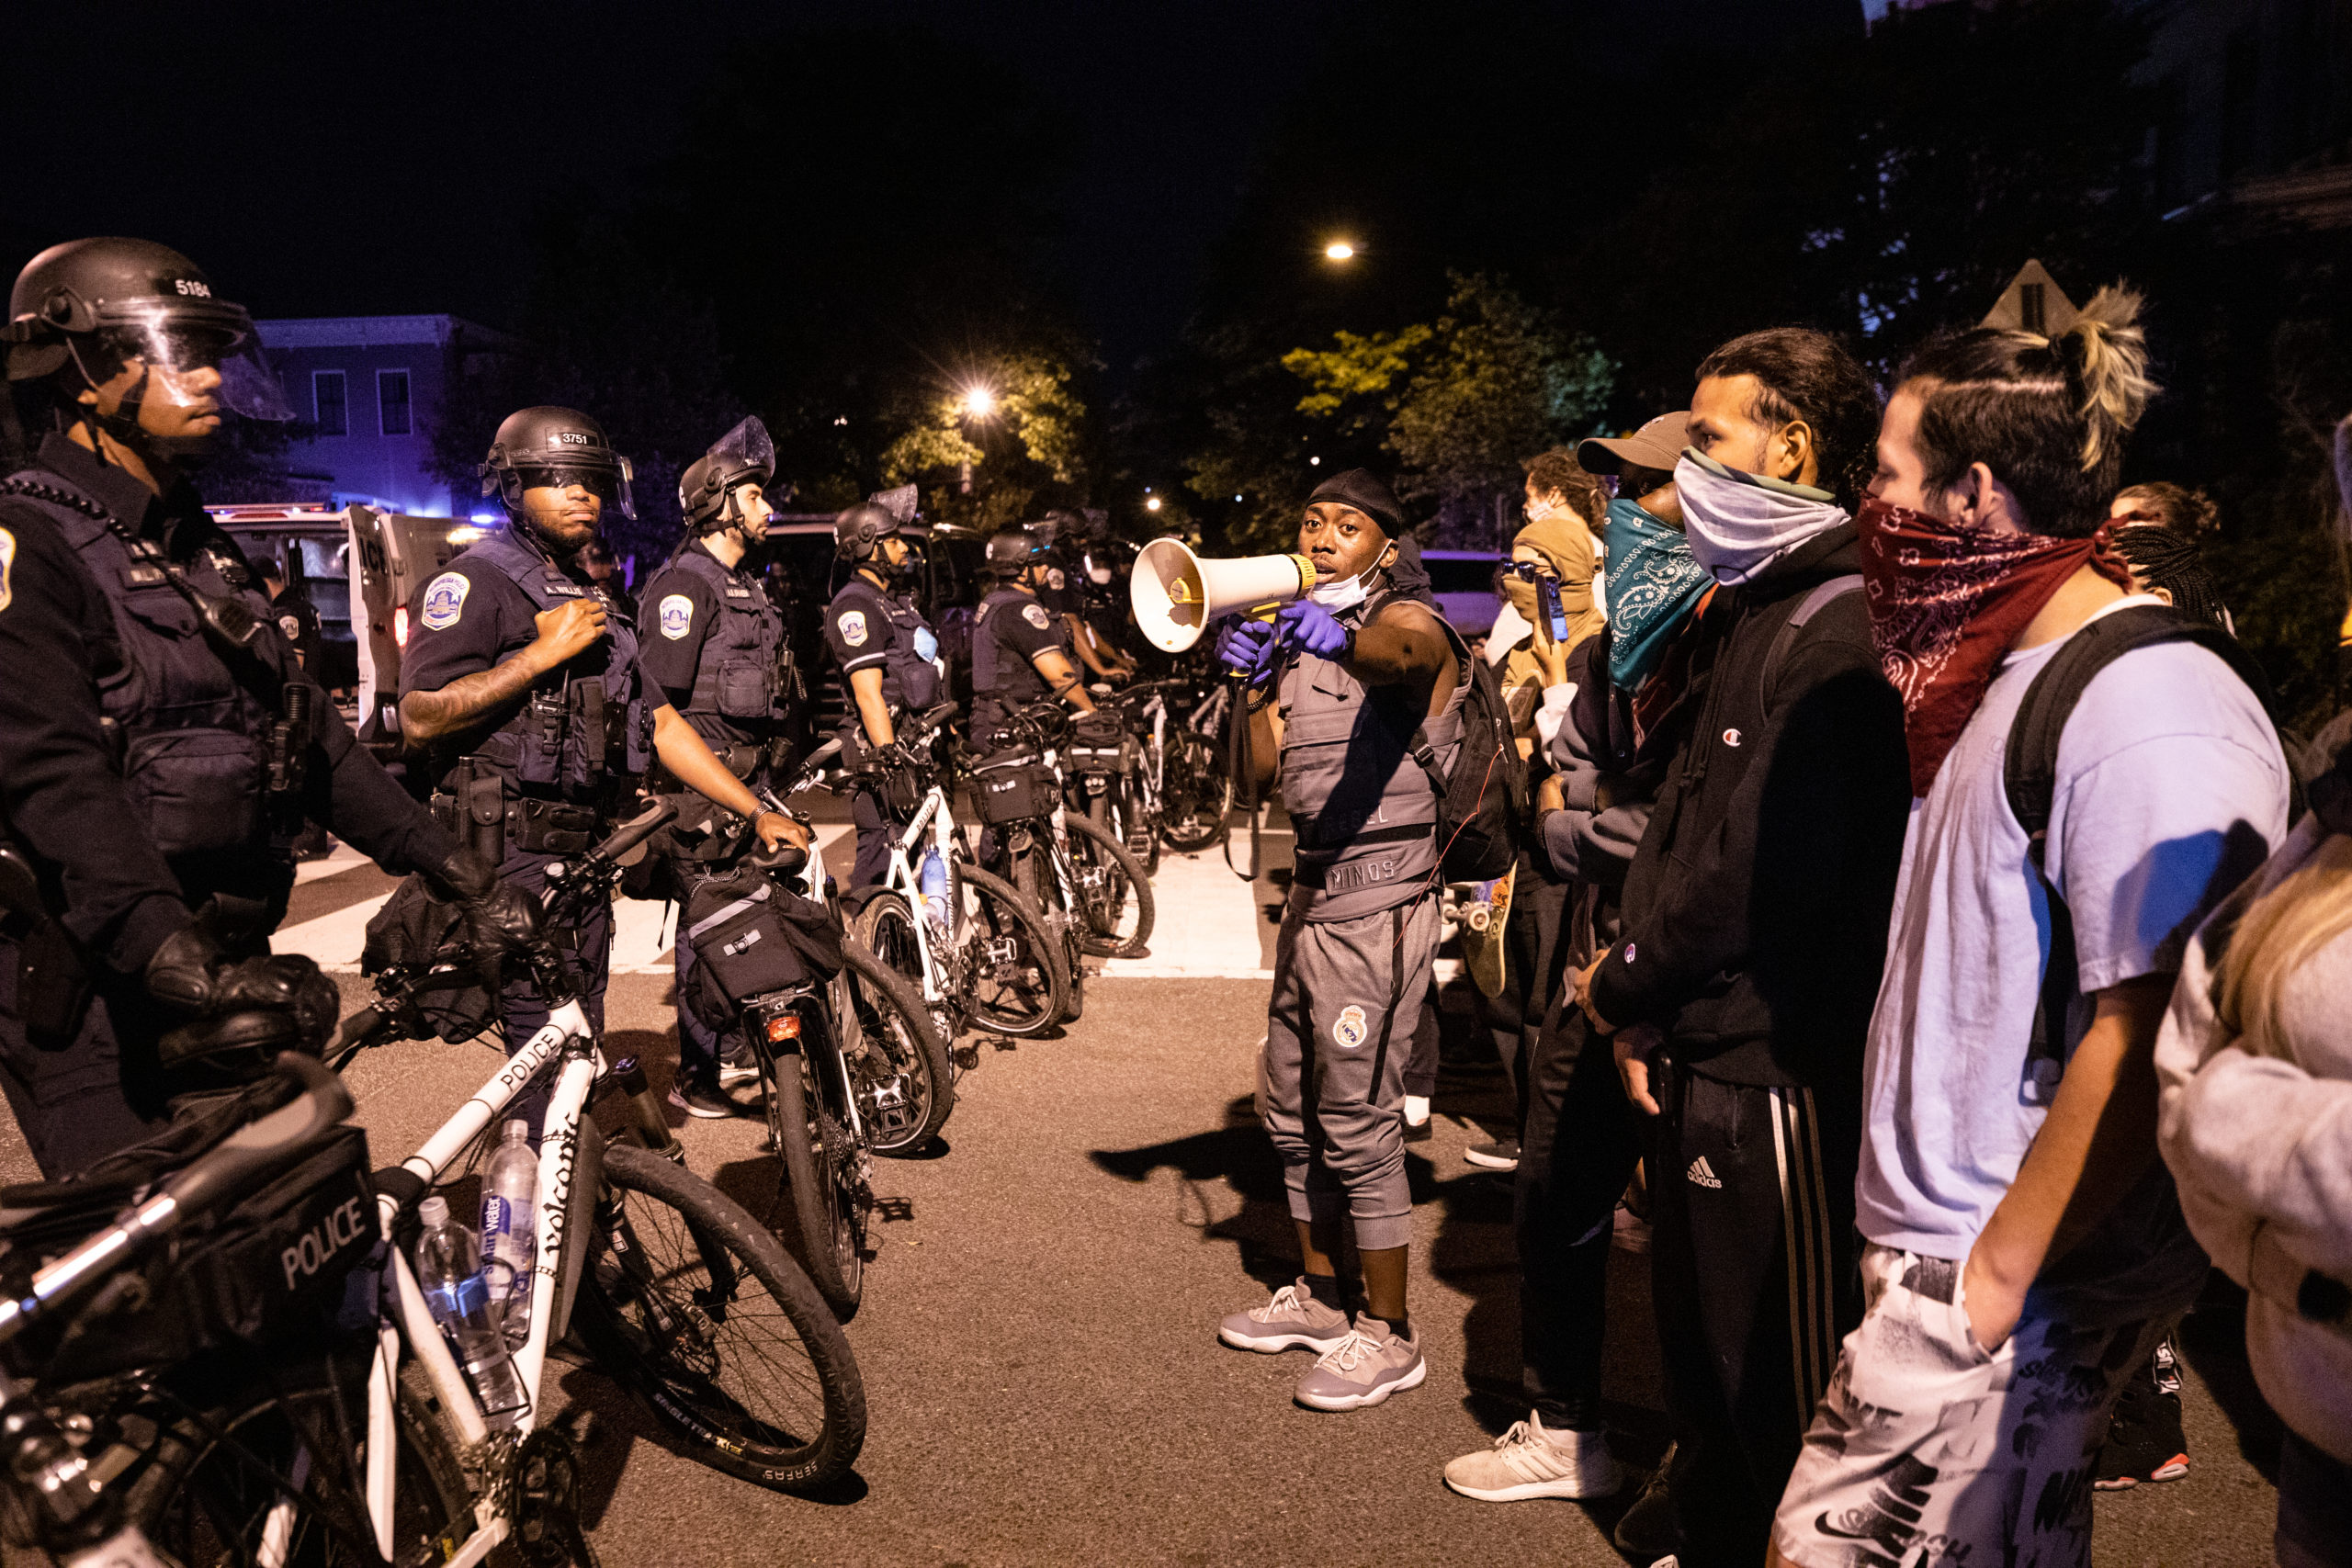 Protesters stand in front of a police bike line in Washington, D.C. on June 1, 2020. (Kaylee Greenlee - DCNF)